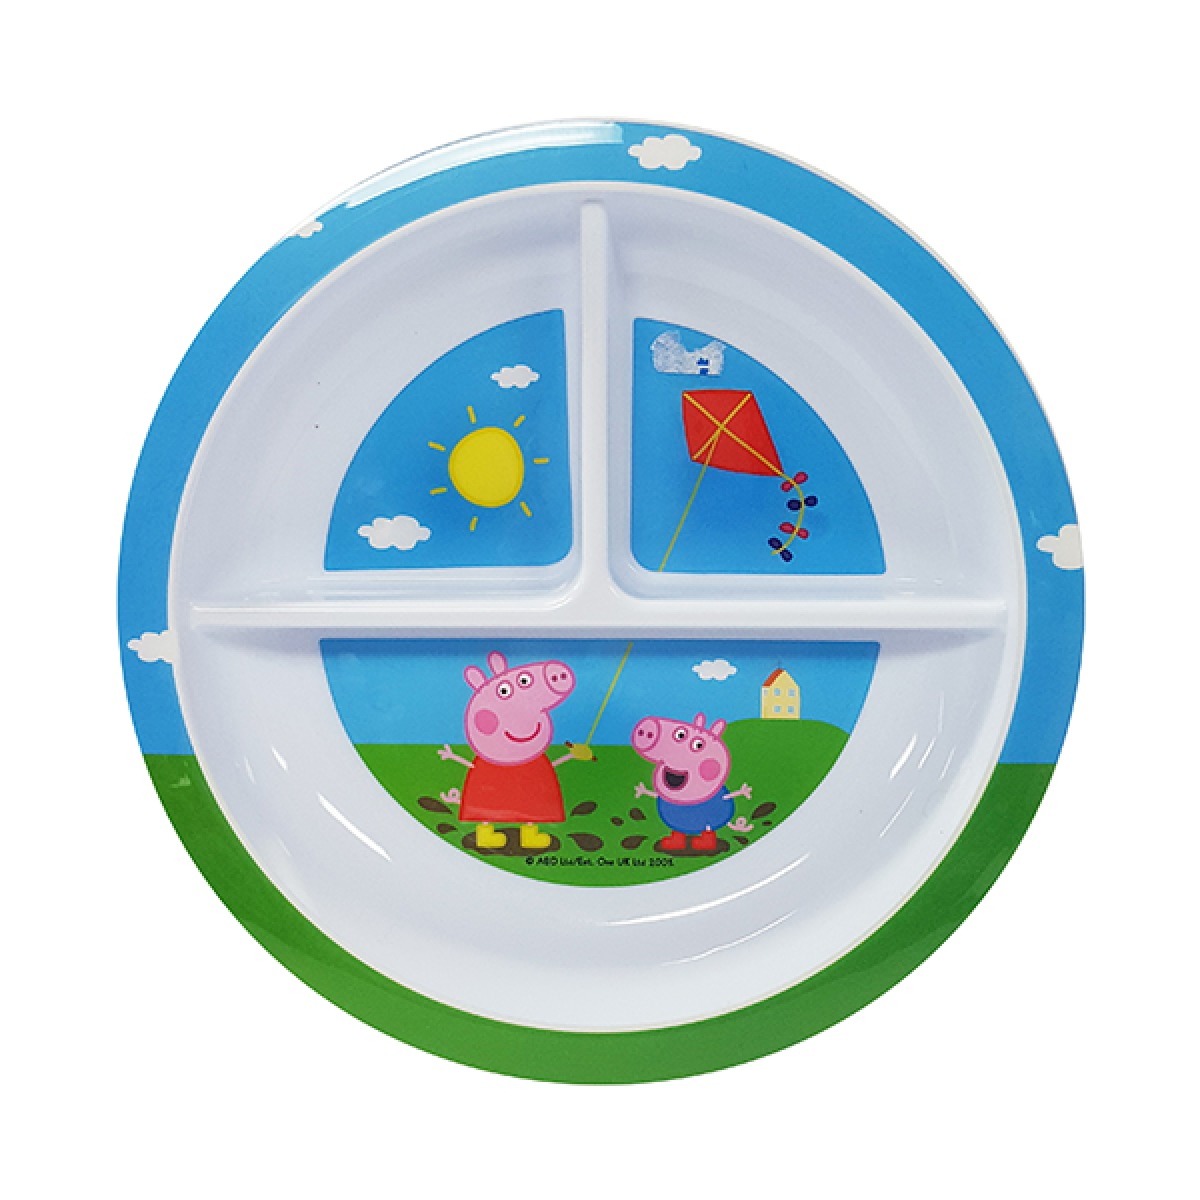 Peppa Pig Section Plate image